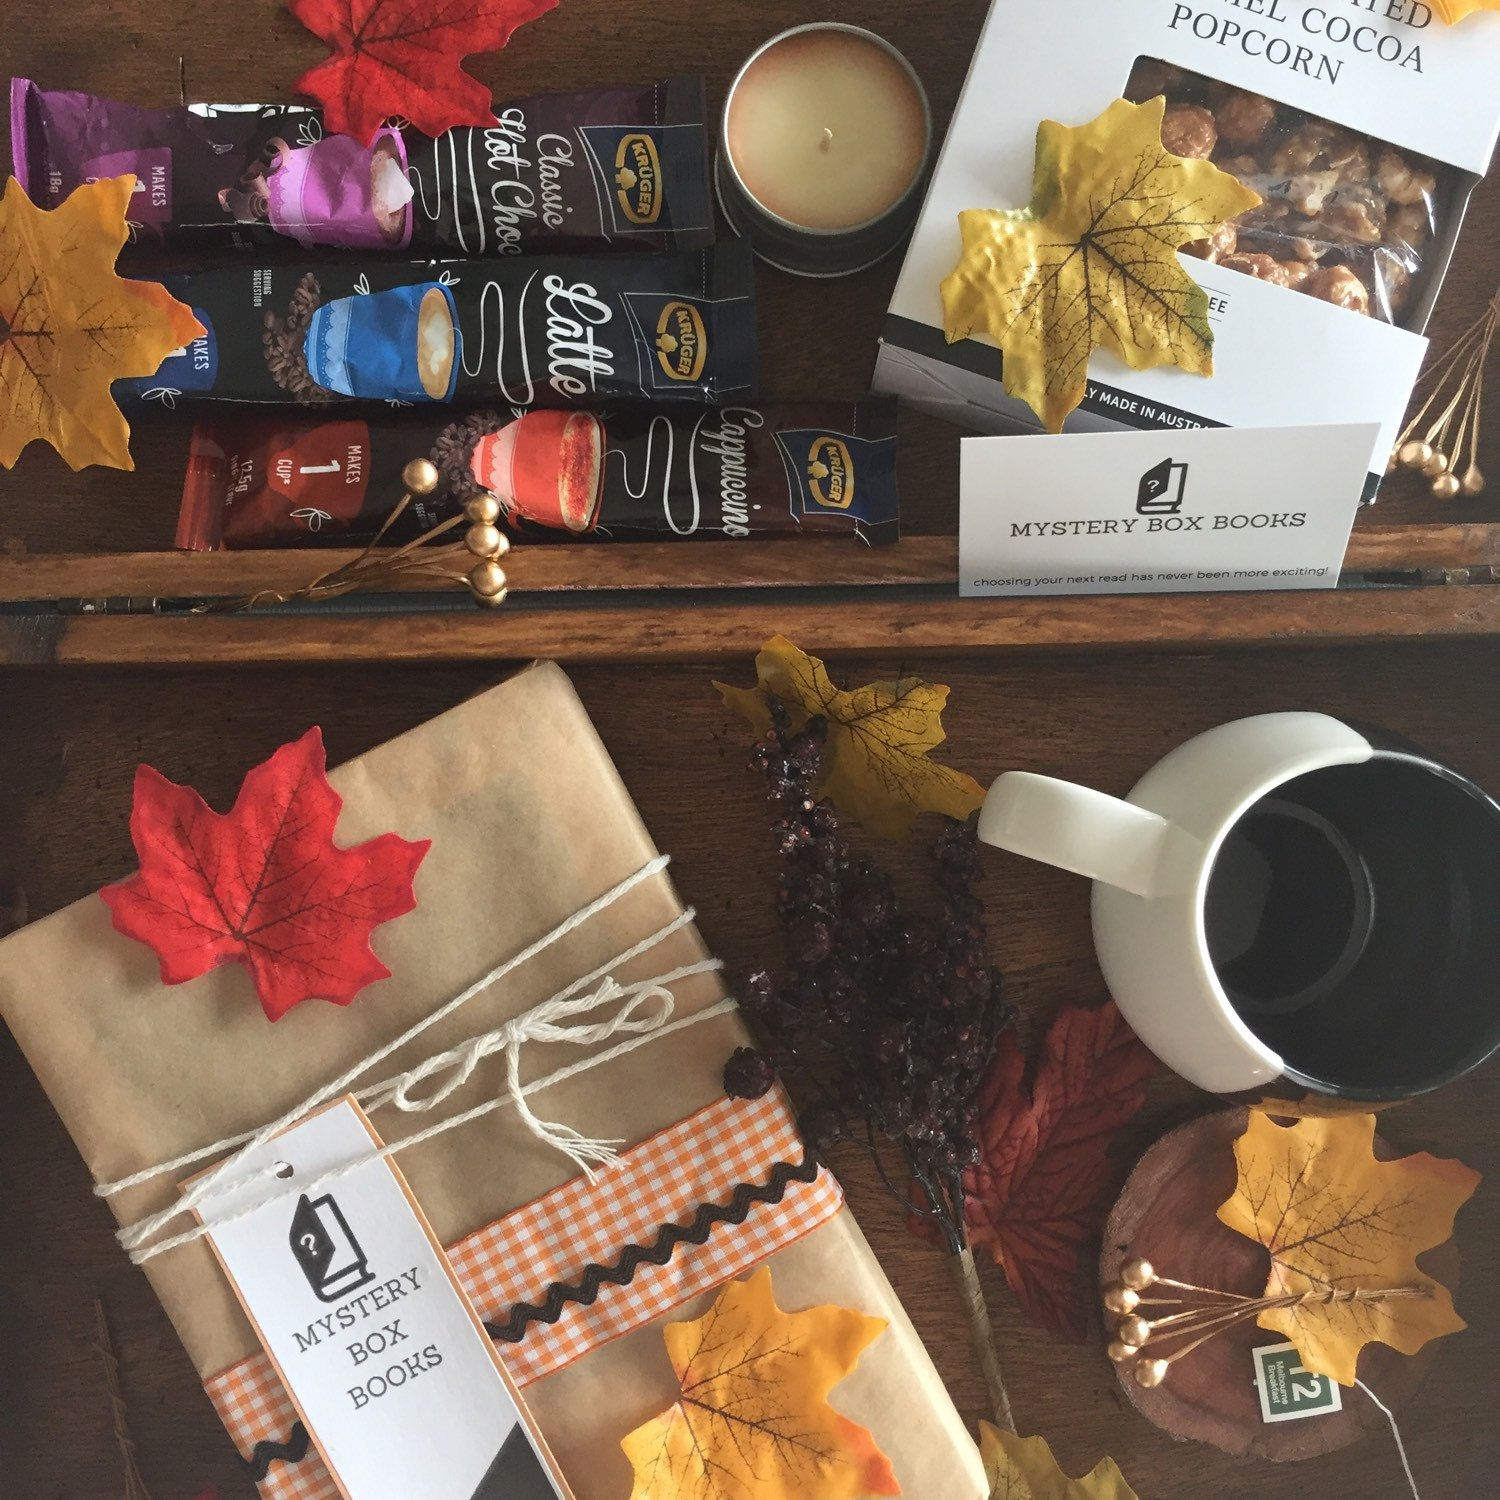 Cuddle up with a great new read, a hot drink in a cute mug, some gourmet snacks and a luscious smelling candle... The Cosy Reader Book Hamper -- spoil yourself or a loved one with this indulgent collection.